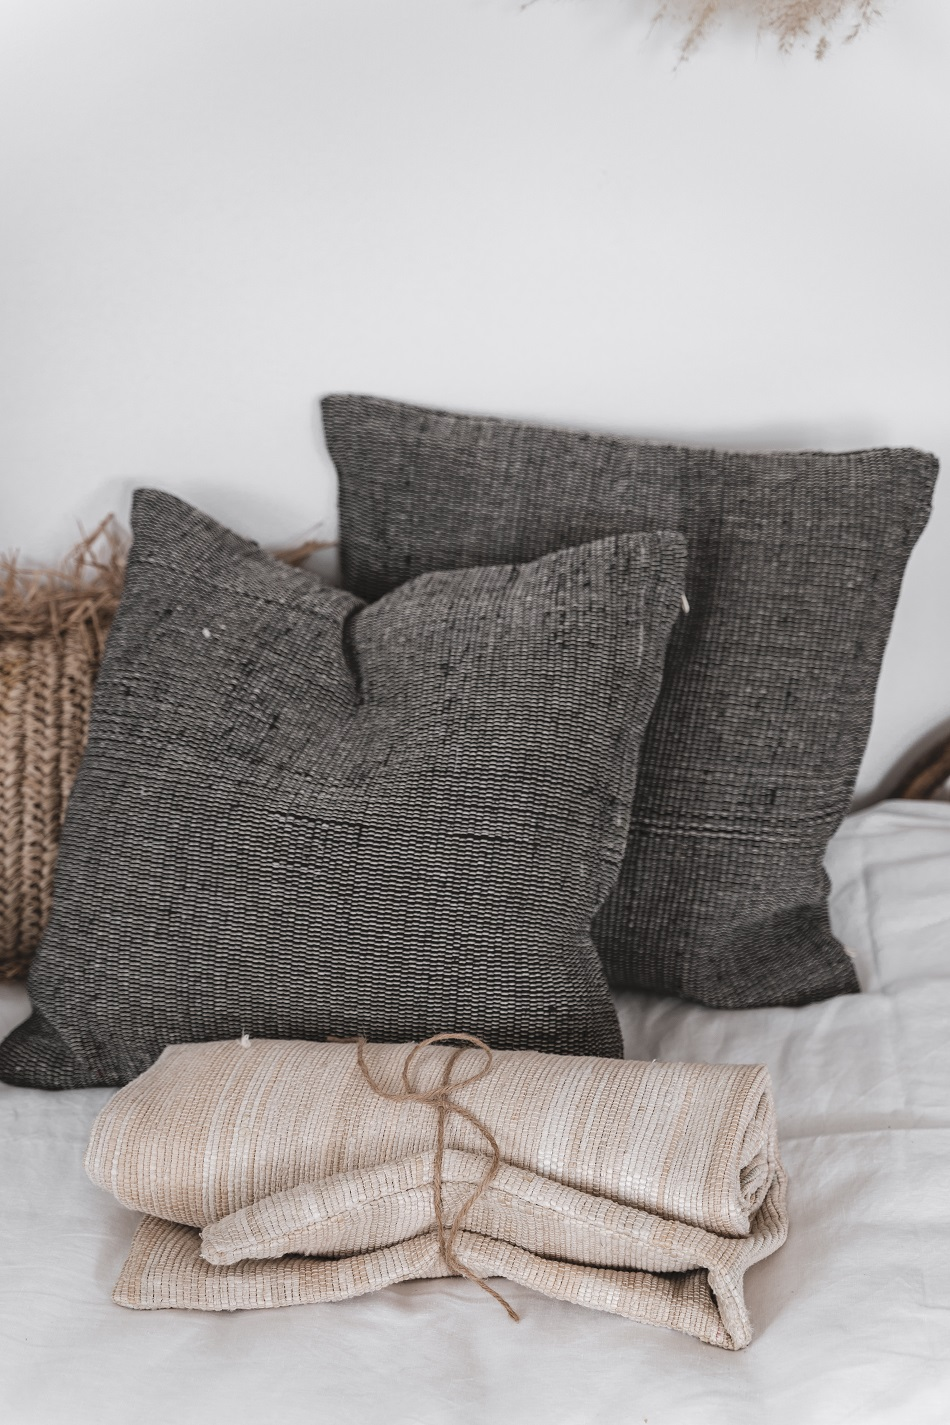 Handmade pillow in grey